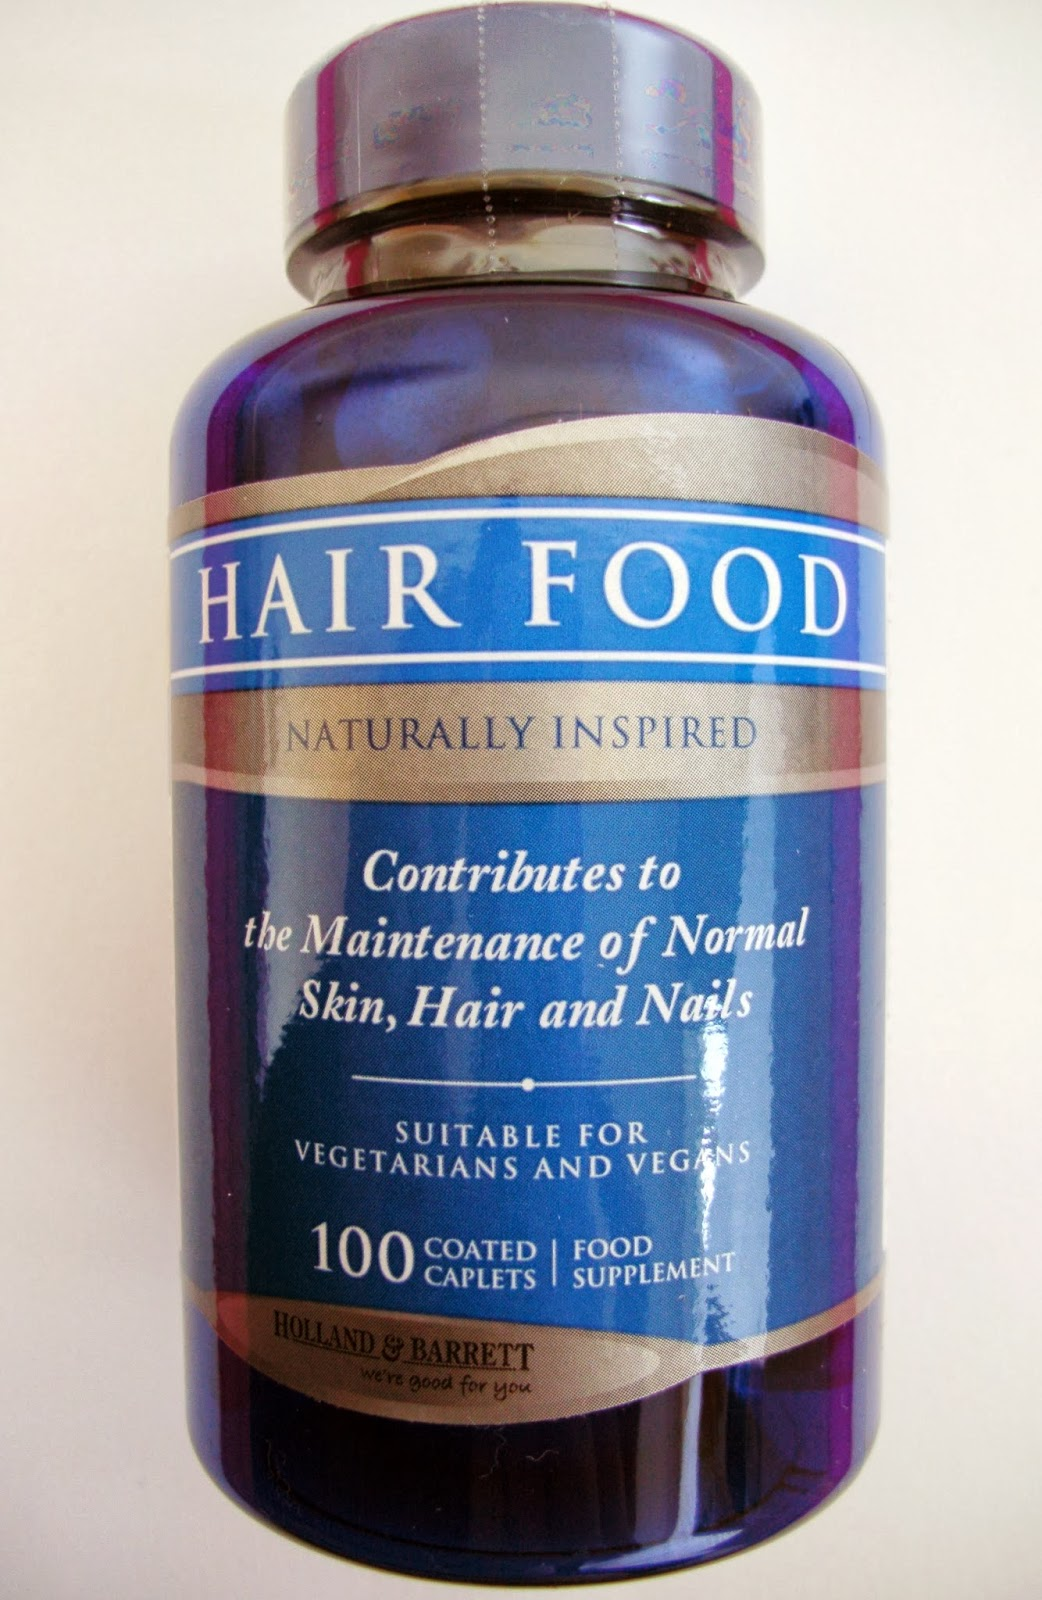 Holland & Barrett Good Life MOT Hair Food Naturally Inspired Food Supplement 100 Coated Caplets